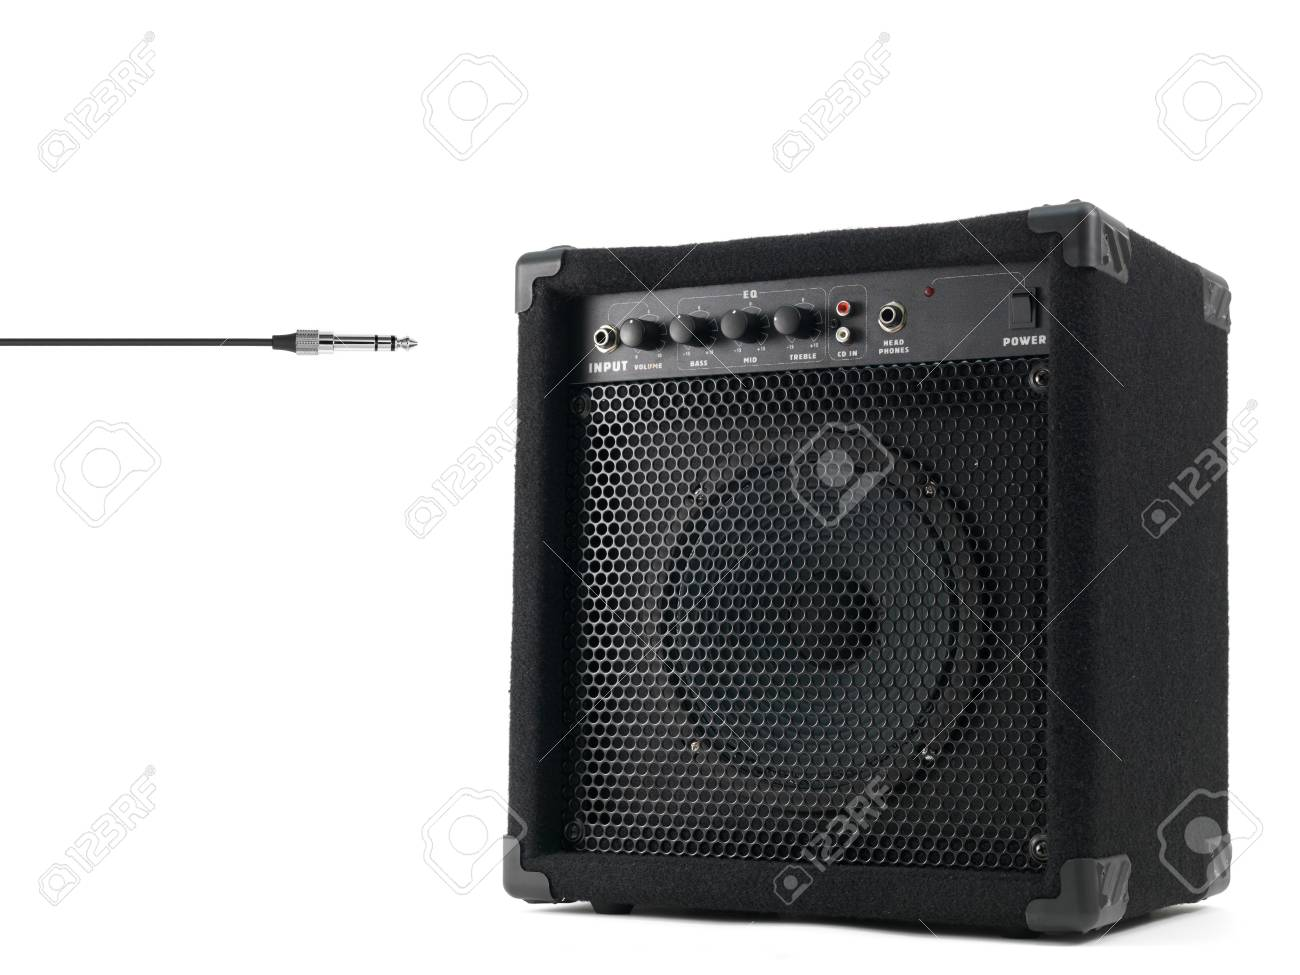 Musical equipment isolated against a plain background Stock Photo - 25490656